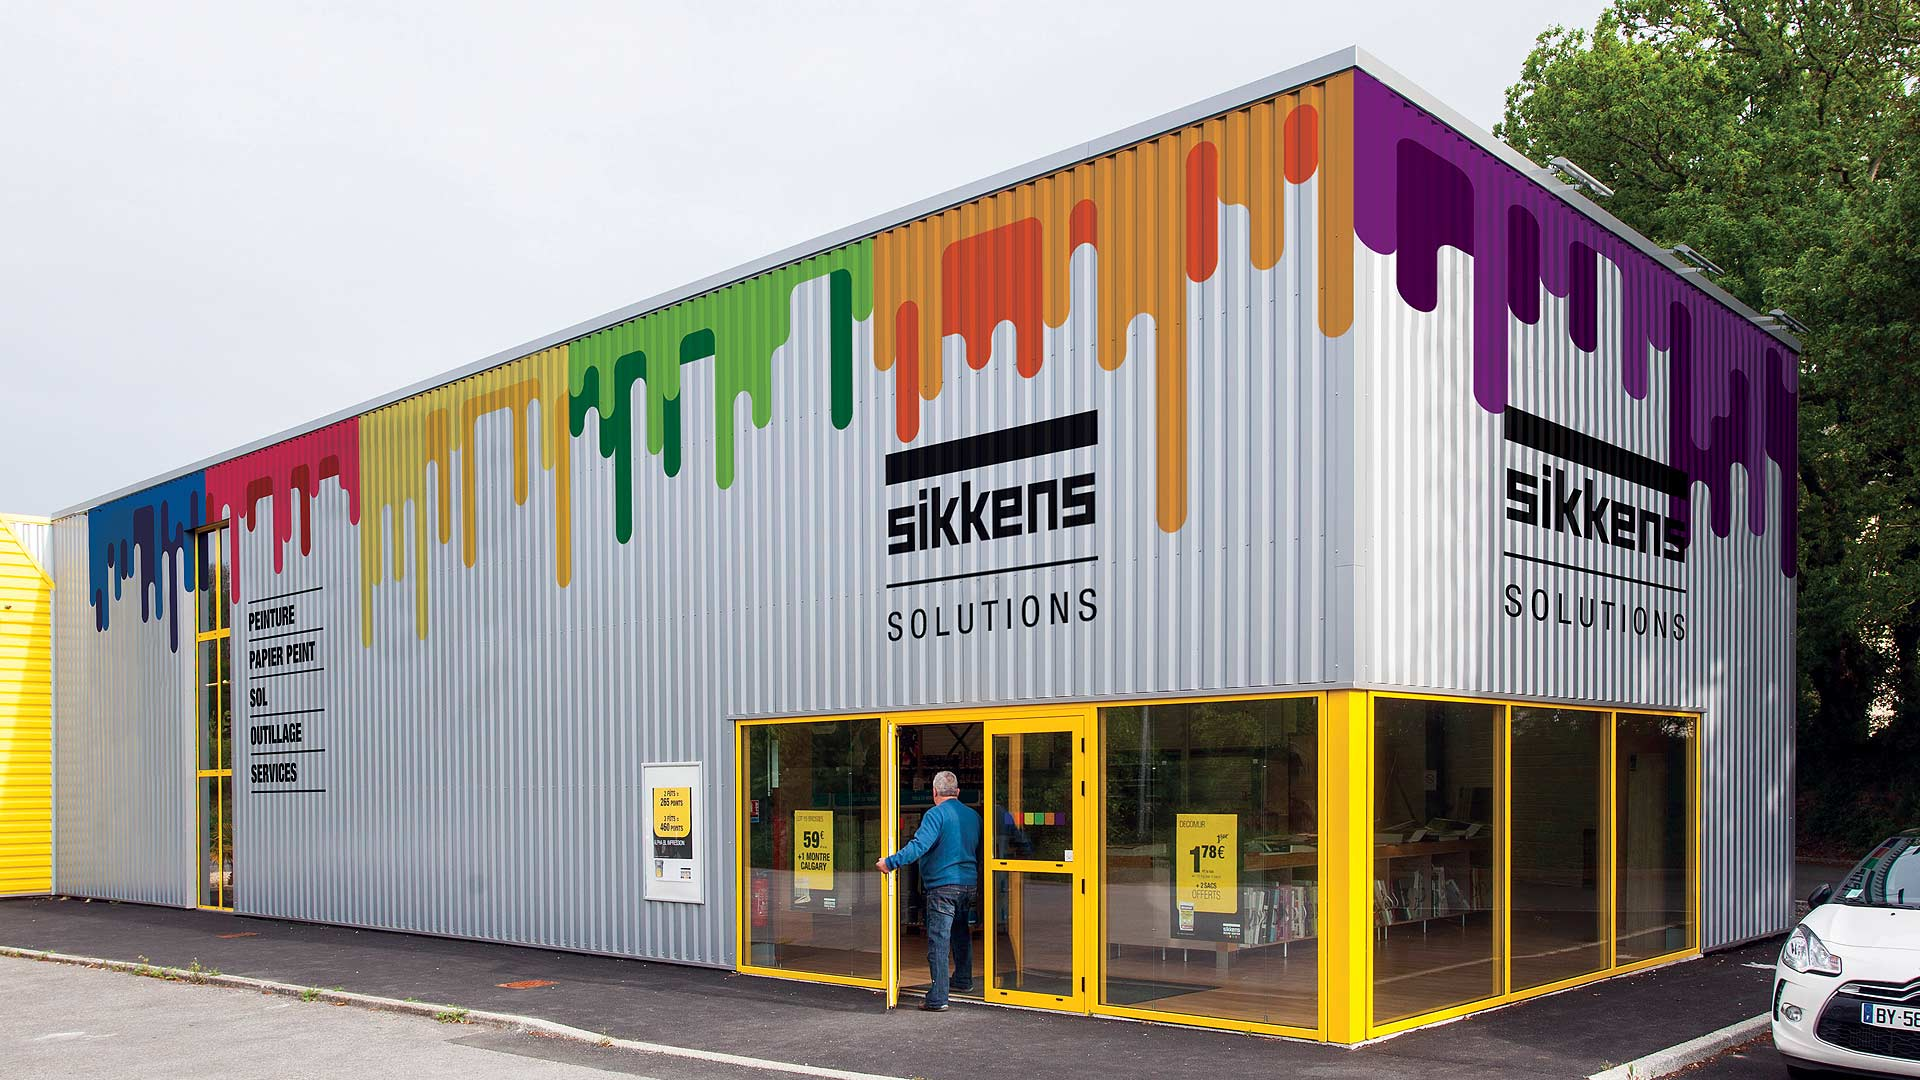 Sikkens (AkzoNobel), European brand expansion